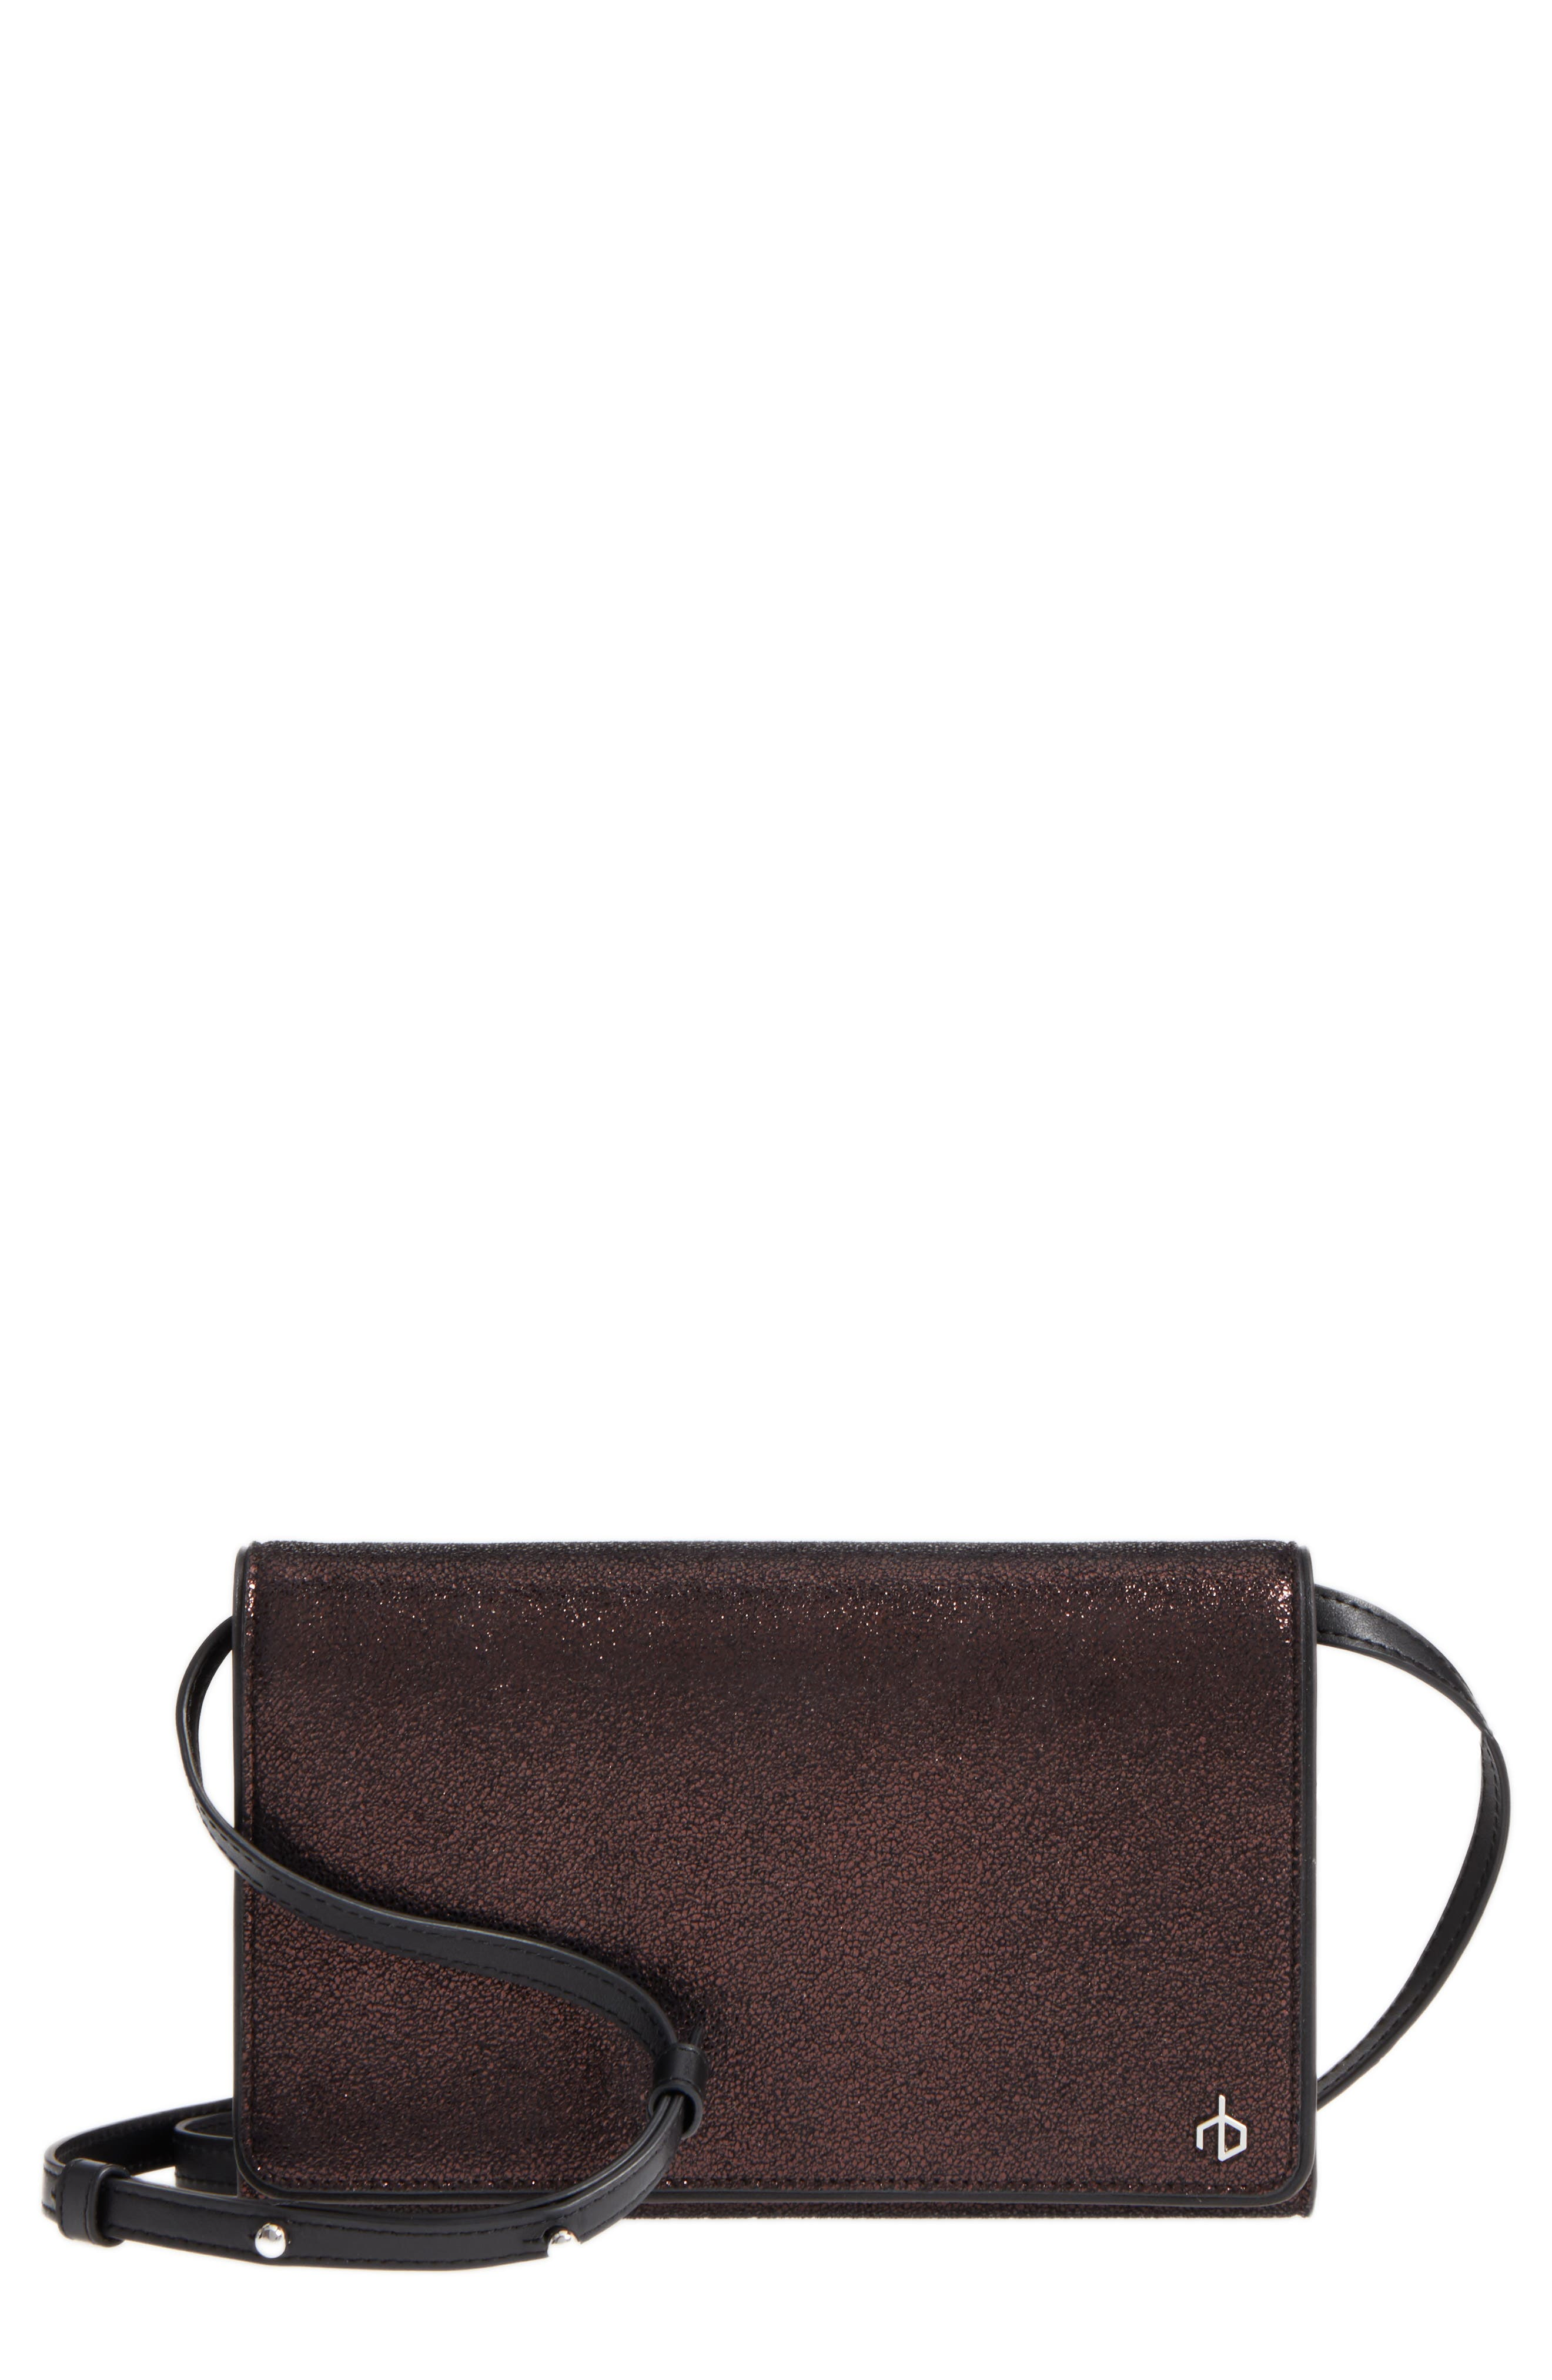 Metallic Leather Crossbody Wallet,                             Main thumbnail 1, color,                             220